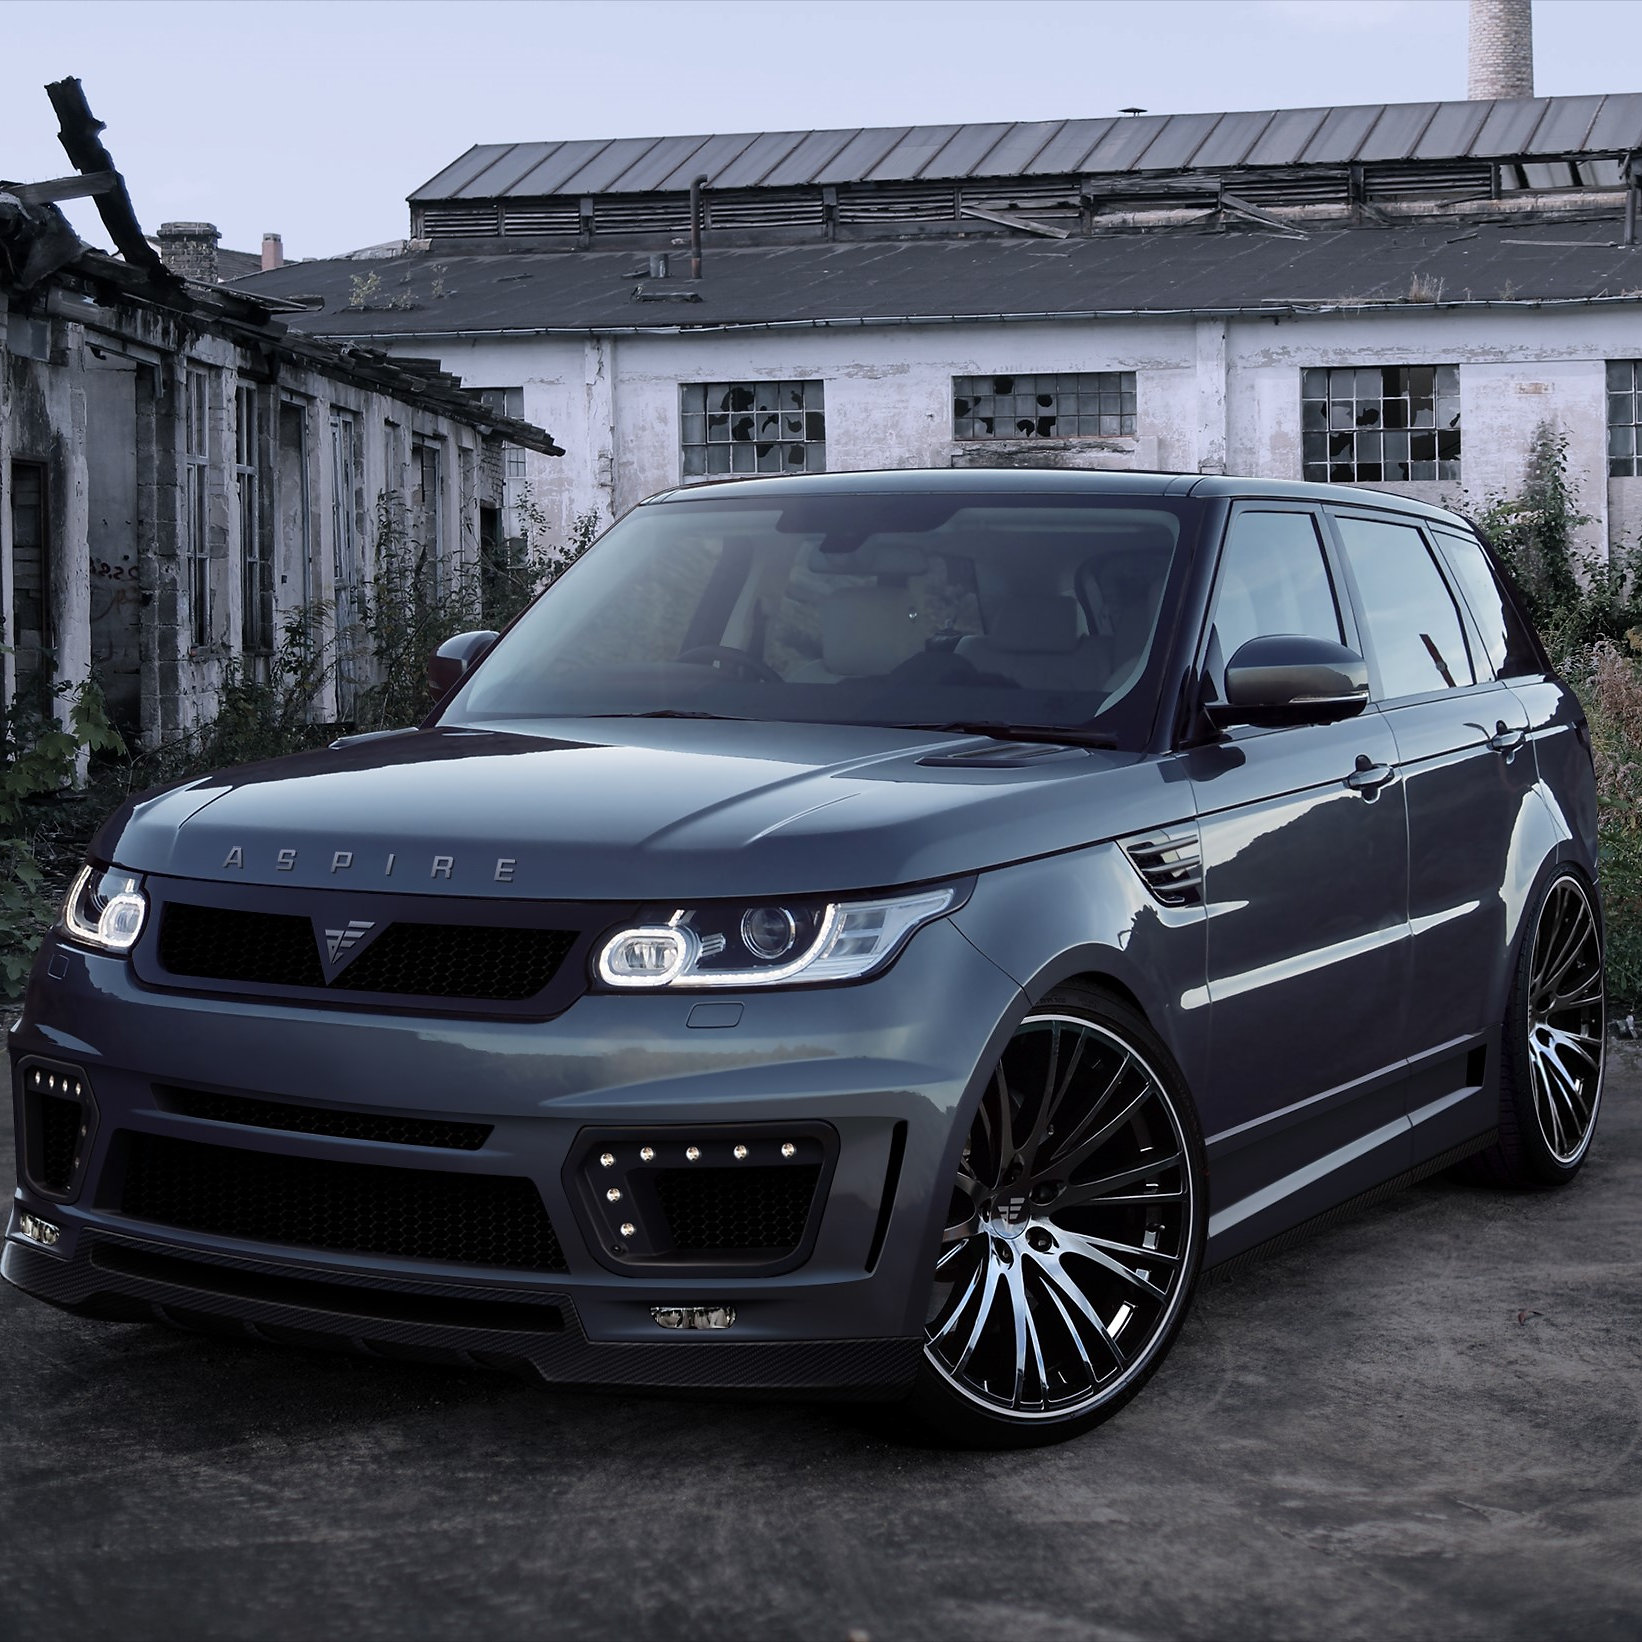 Johnny Angel Customs Bodykits and Vehicle Wrapping Range Rover